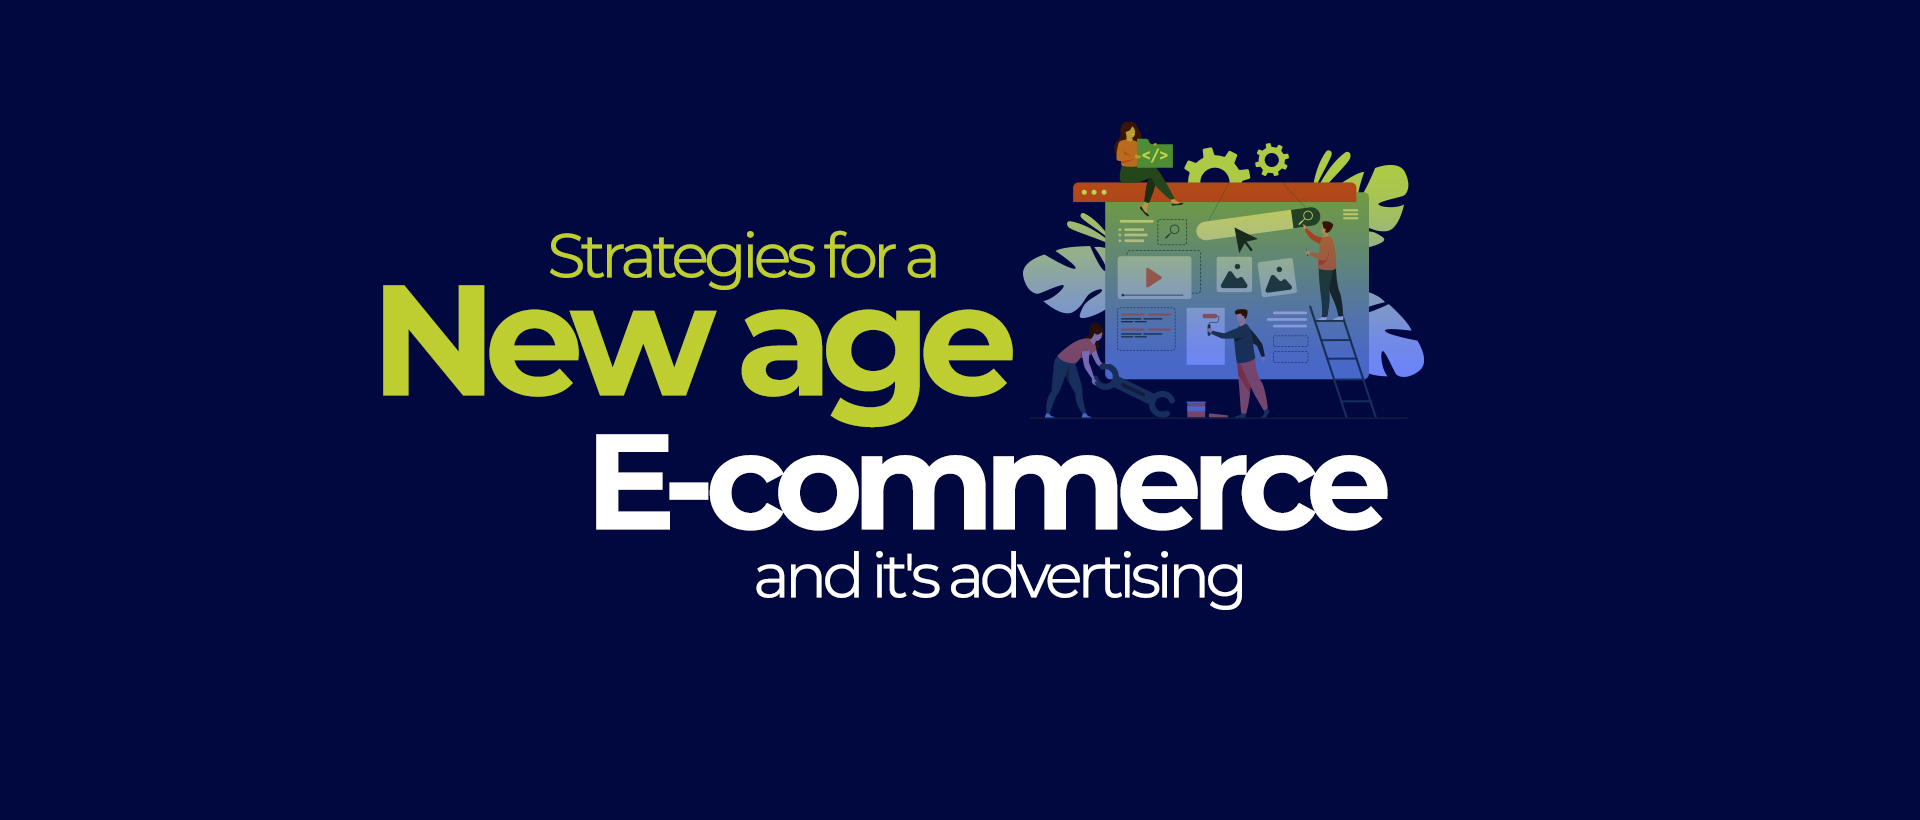 Strategies for a new age: e-commerce and it's advertising